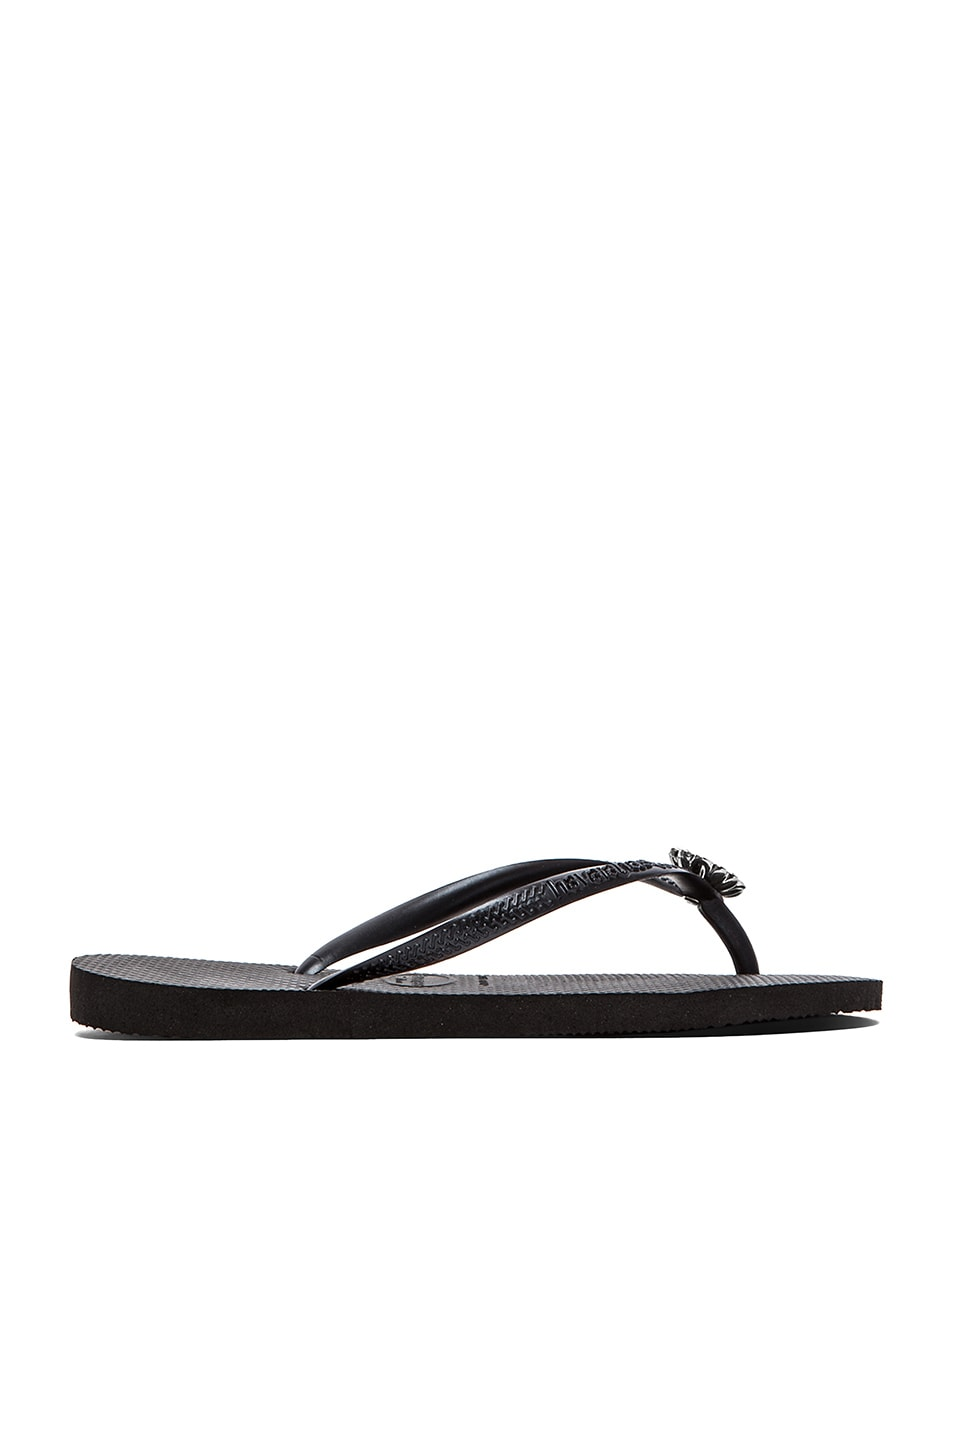 Havaianas Slim Crystal Poem Flip Flop in Black